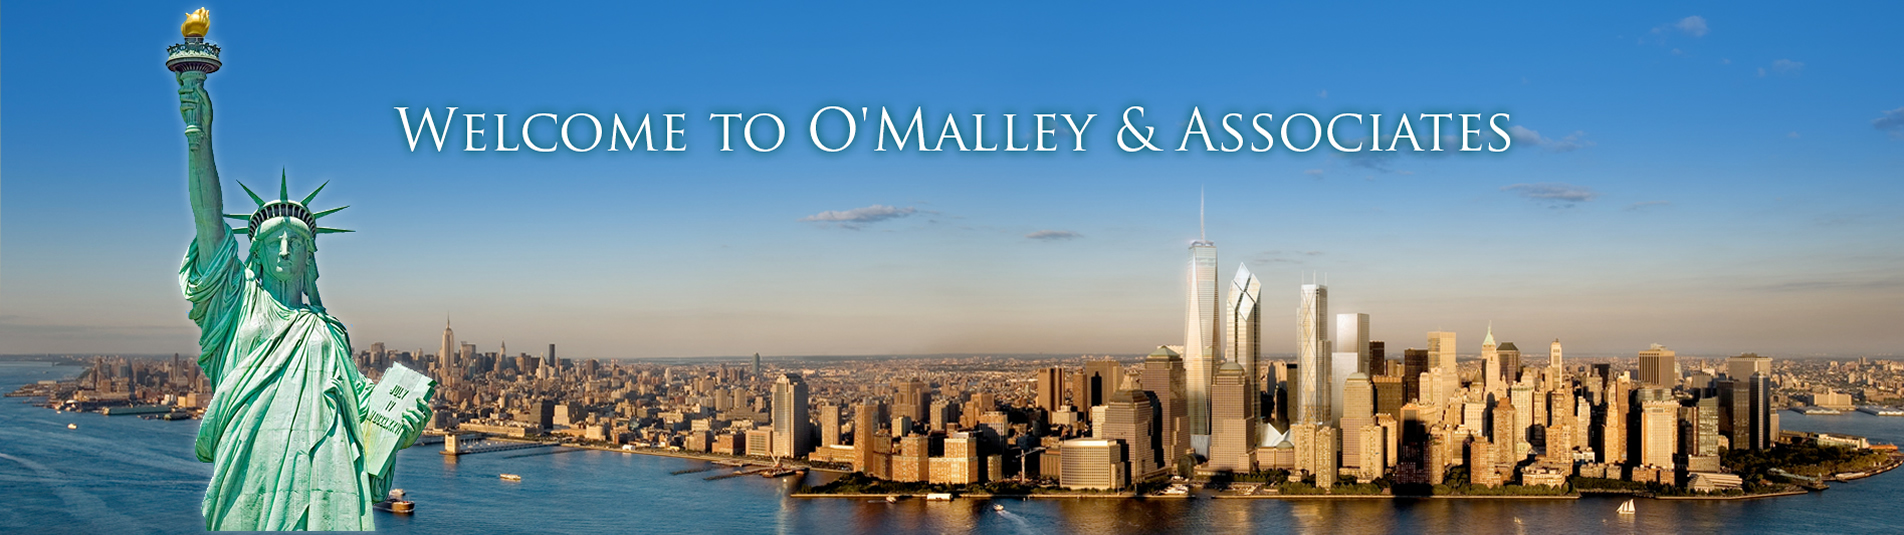 Omalley-banner5